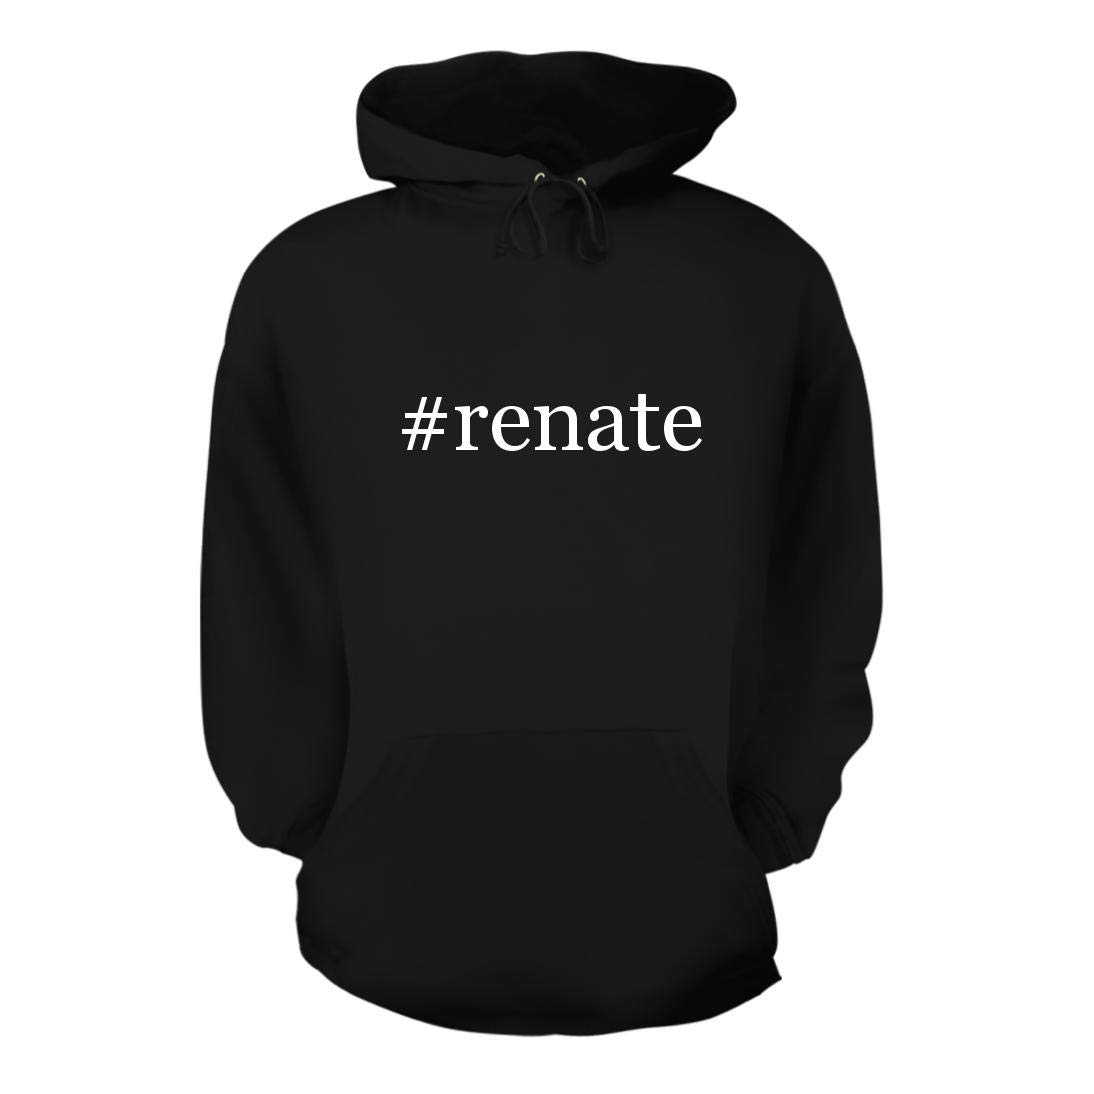 Shirt Me Up #Renate - A Nice Hashtag Men's Hoodie Hooded Sweatshirt, Black, Large by Shirt Me Up